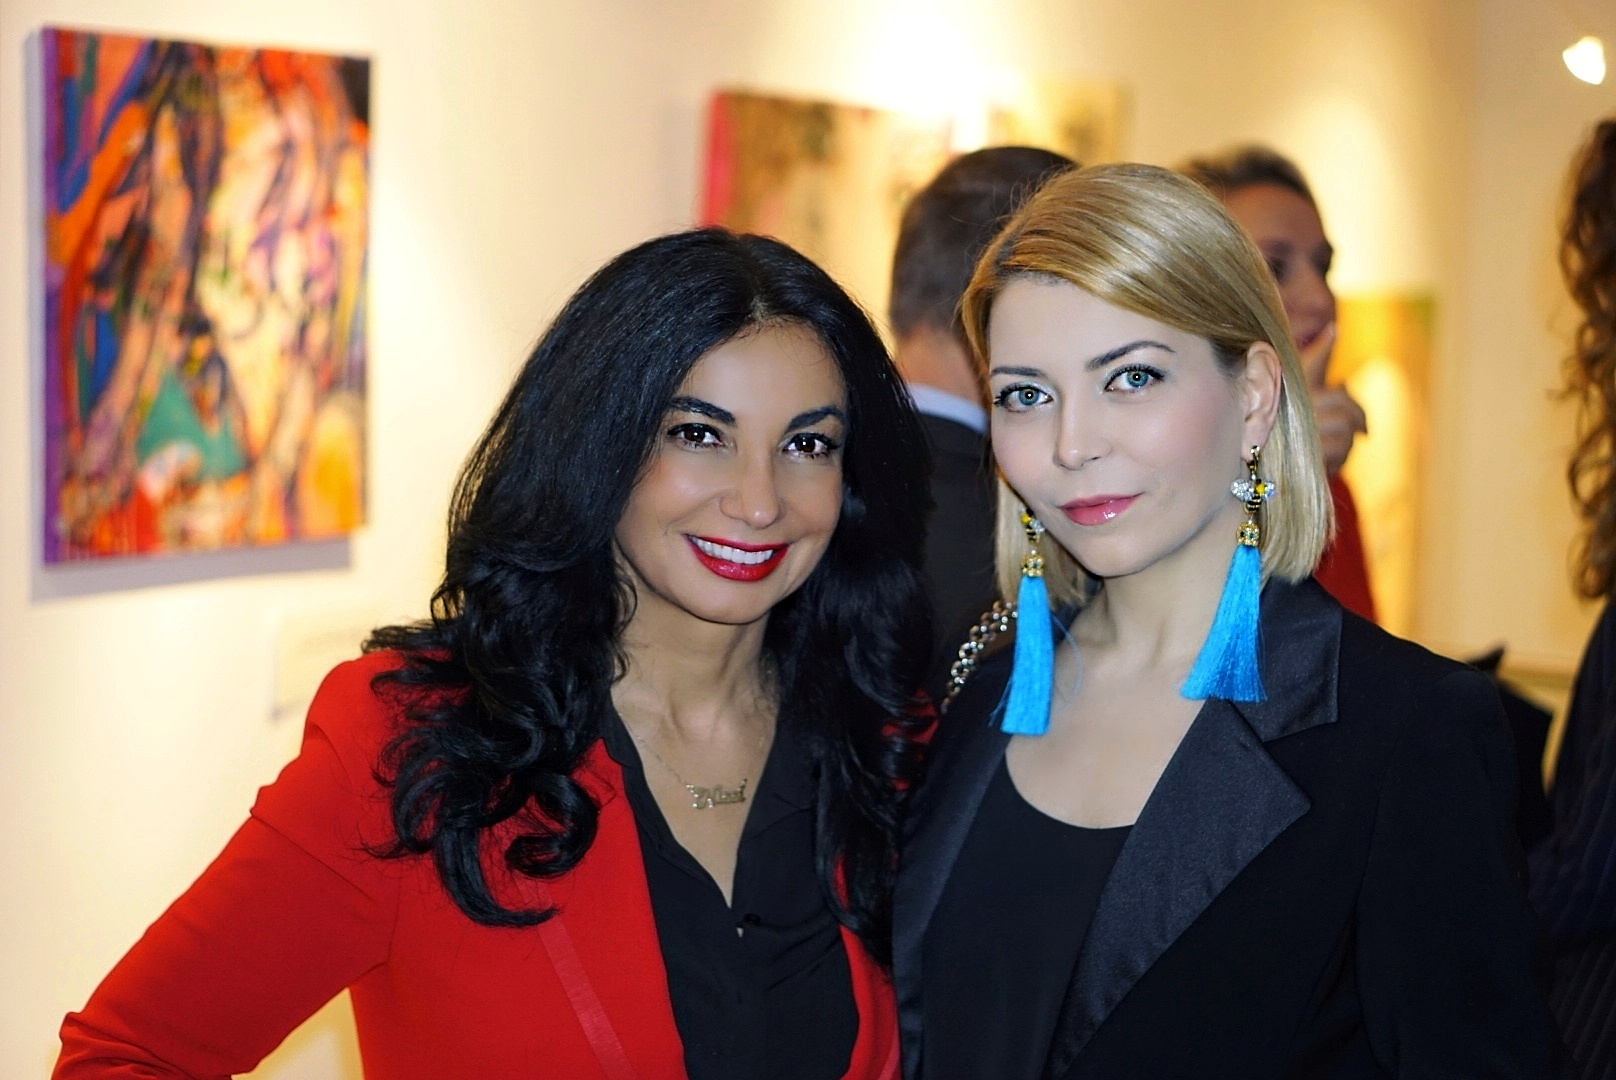 Couture Designer and Artist Yuliya Savytska at the Art Gallery Nissis Kunstkantine